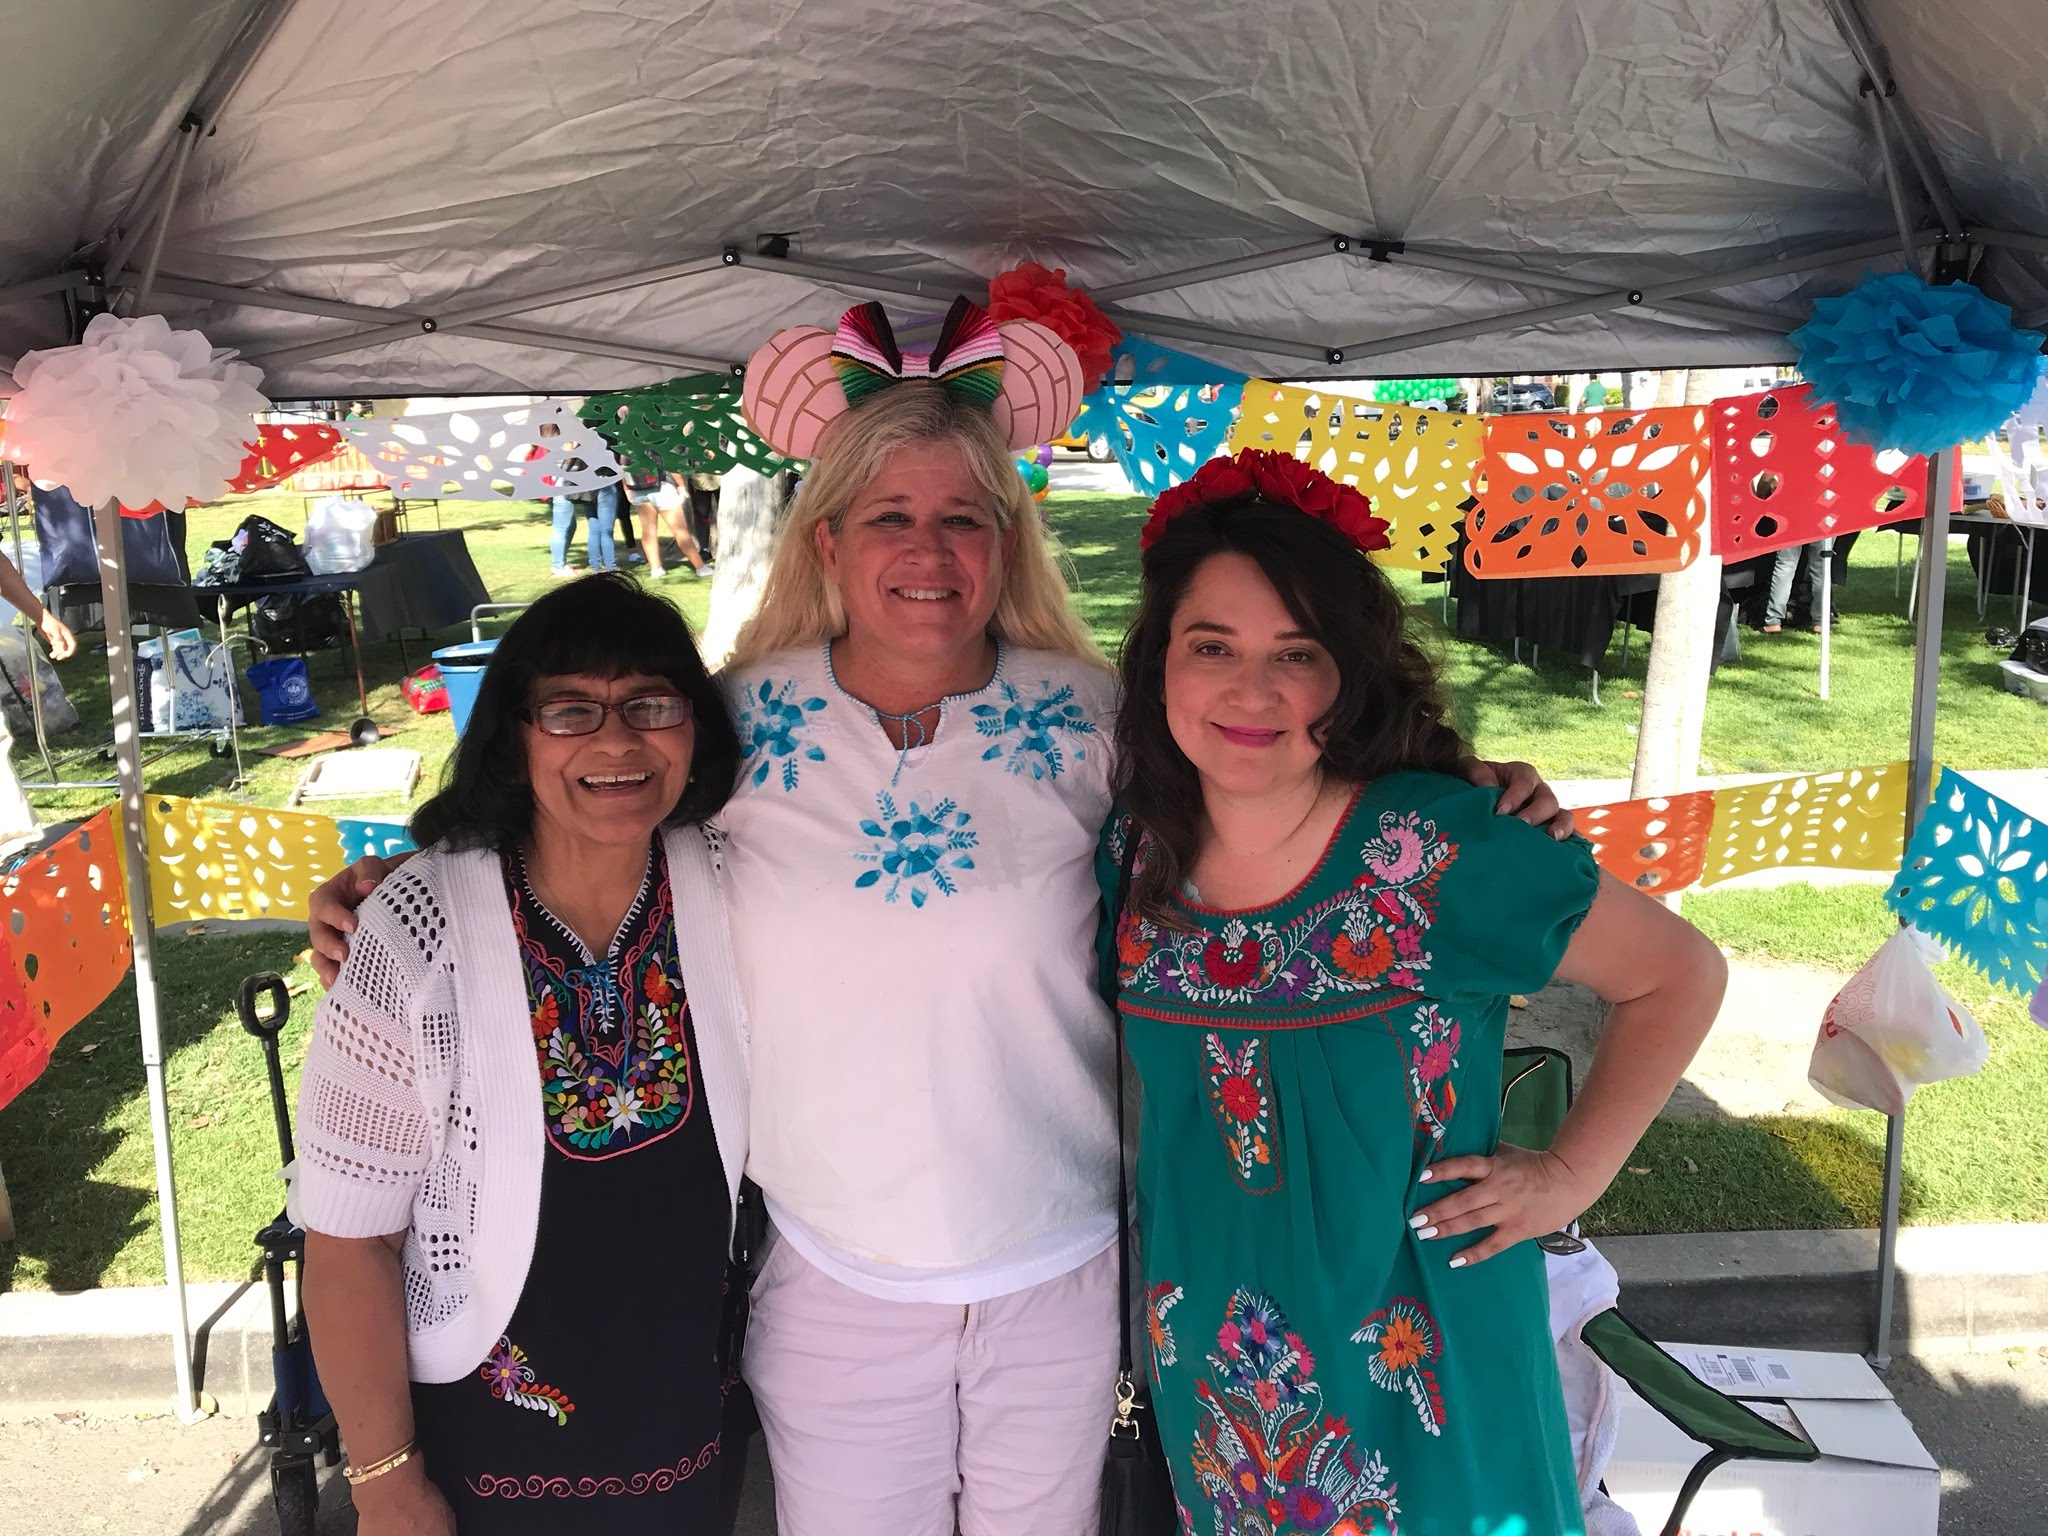 Left to Right: Patty Goytia, Jenny Siebel, and Letty Cardenas - Photo Credit: Laura Gaber